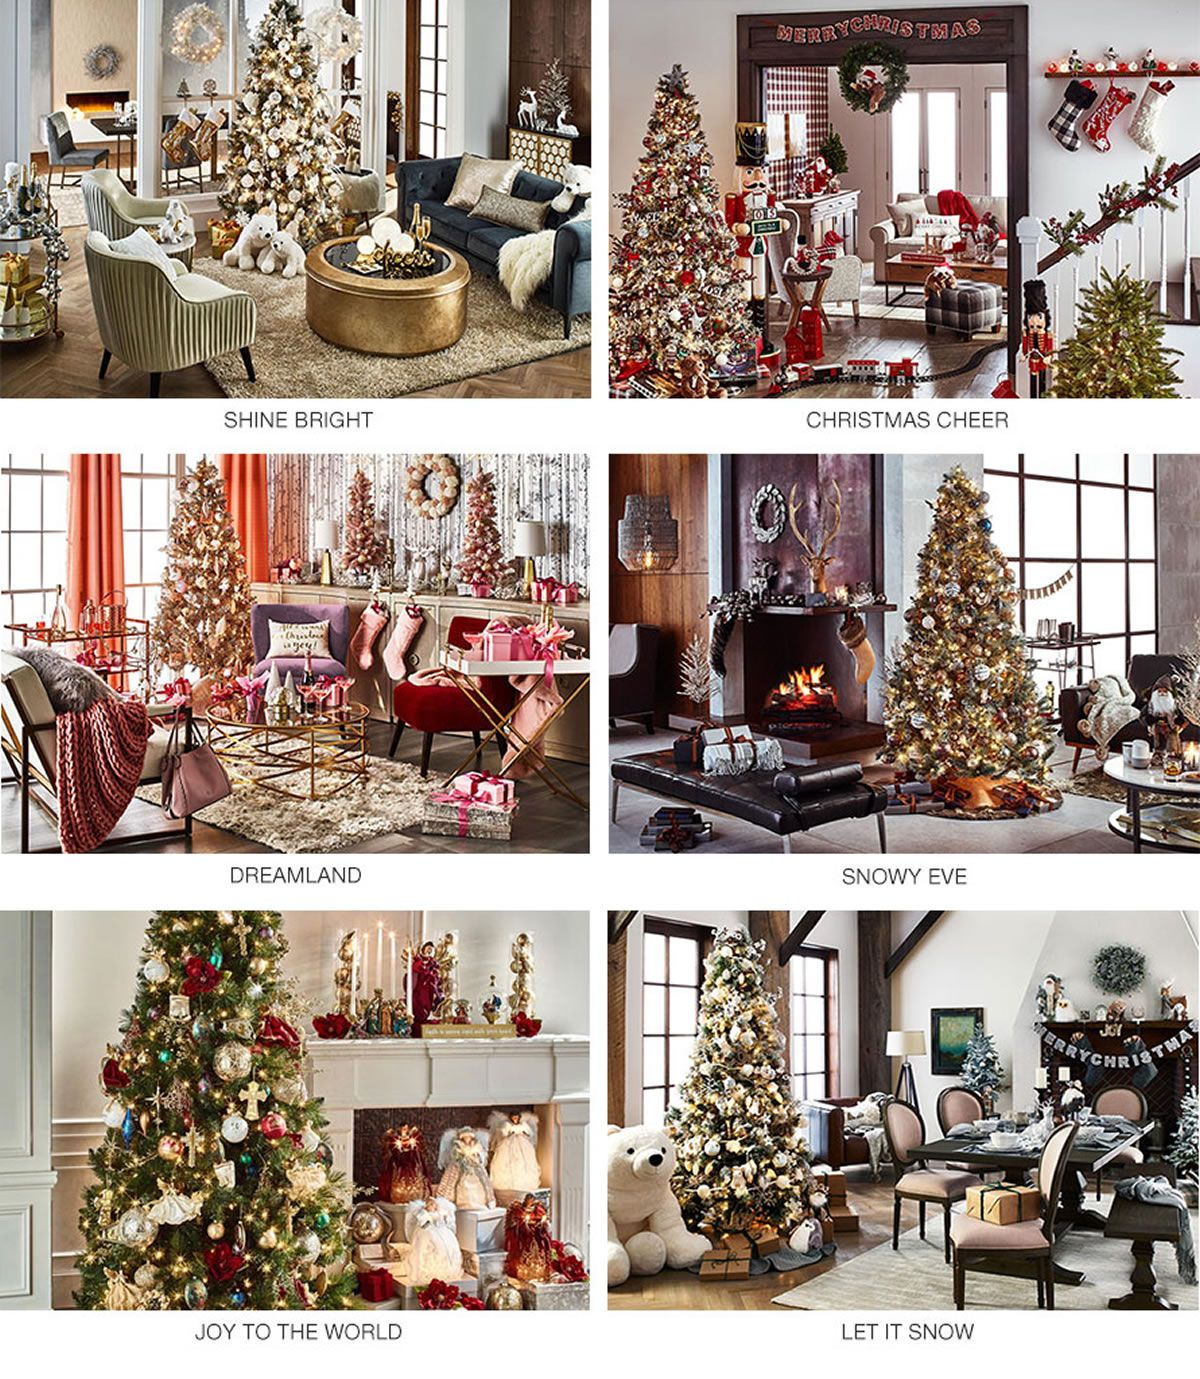 shine bright christmas cheer dreamland snowy eve joy to the world - Christmas Indoor Decorations Sale